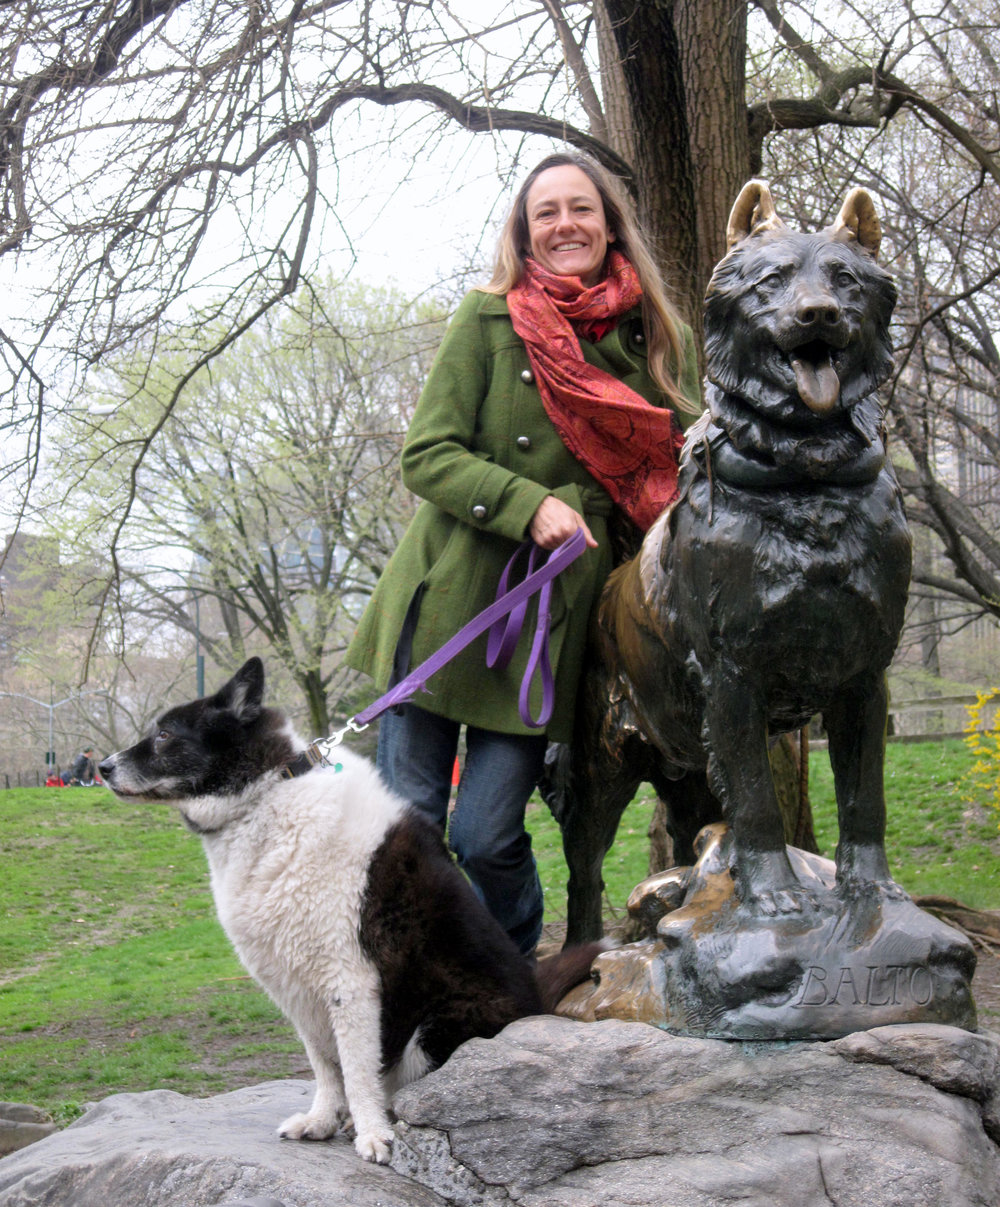 Desirée with Bingo and Balto